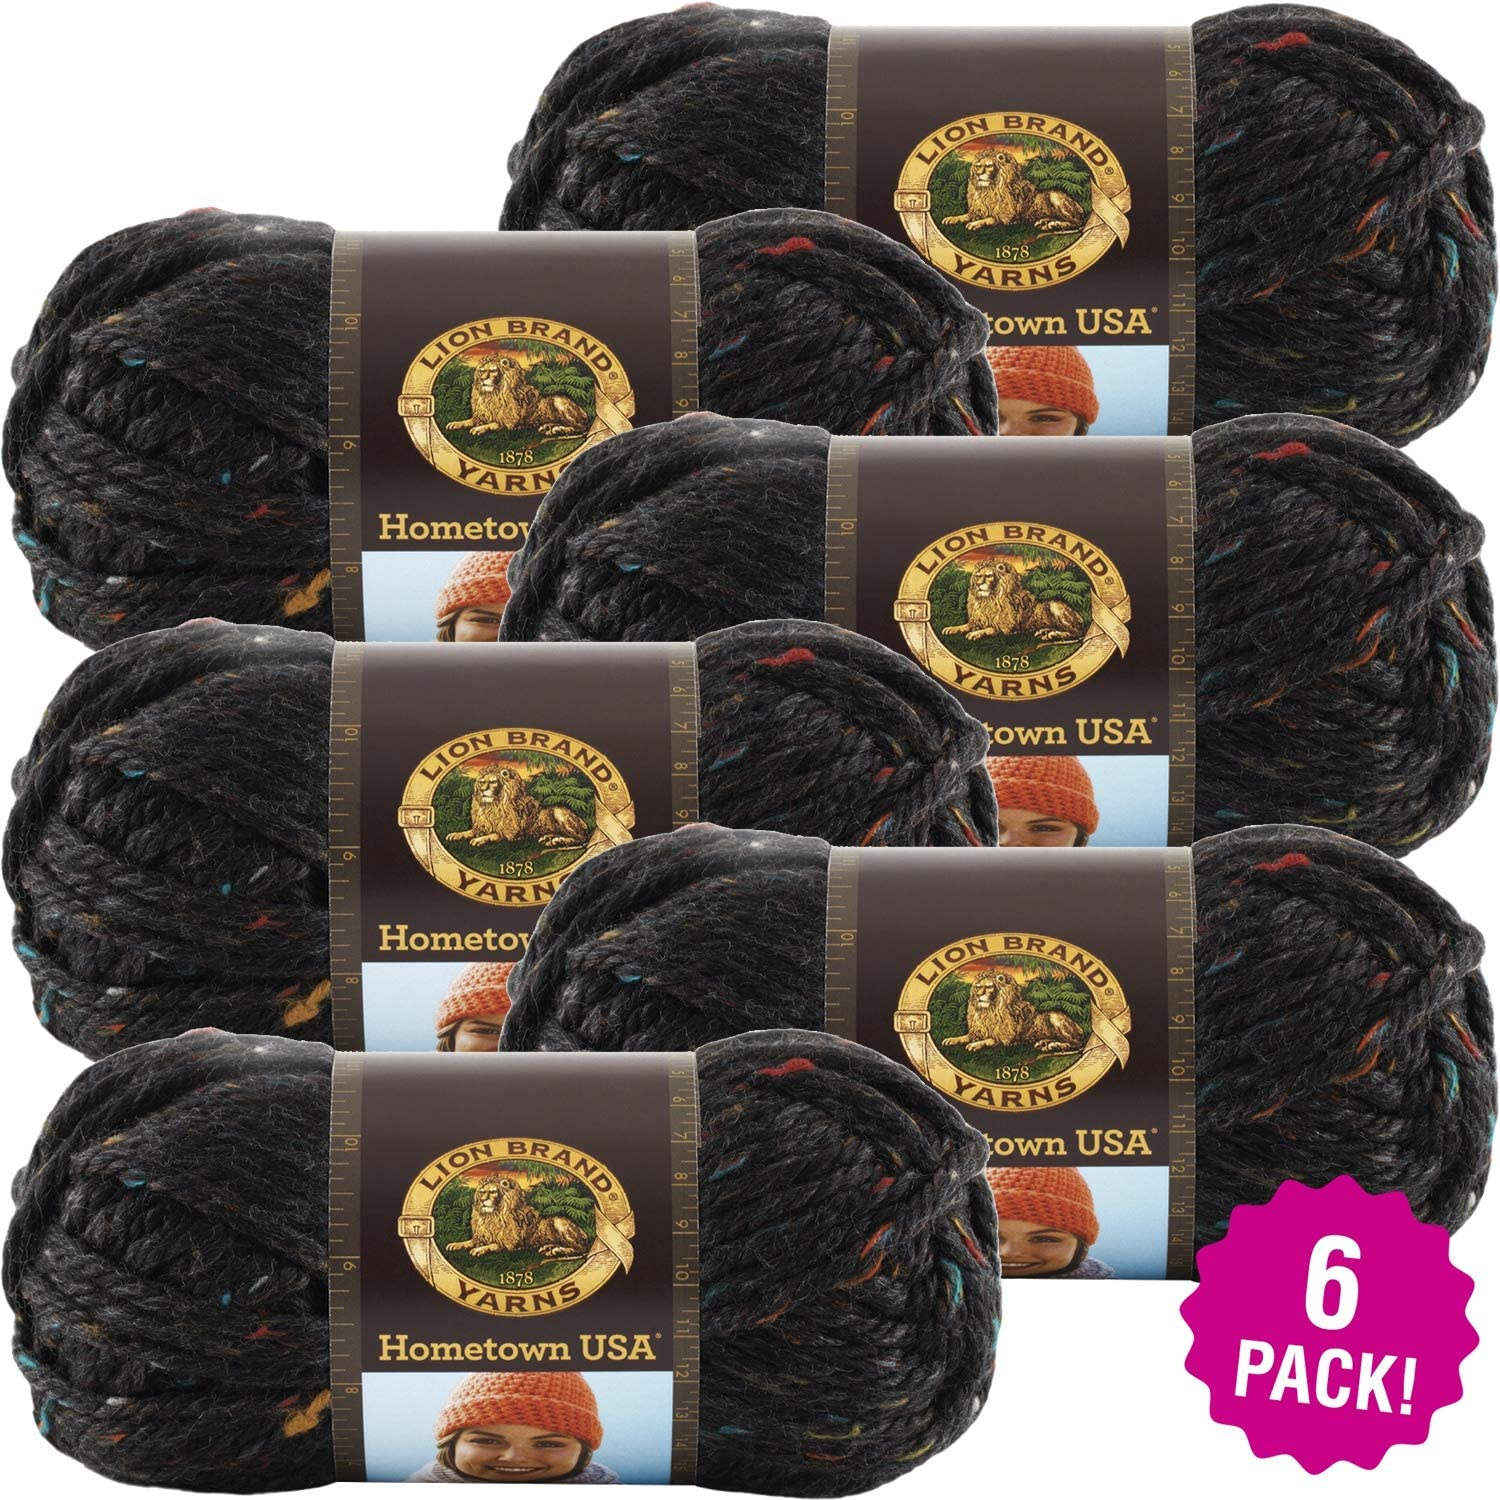 Lion Brand Cambridge Tweed Hometown USA Yarn 6/Pk 6 Pack